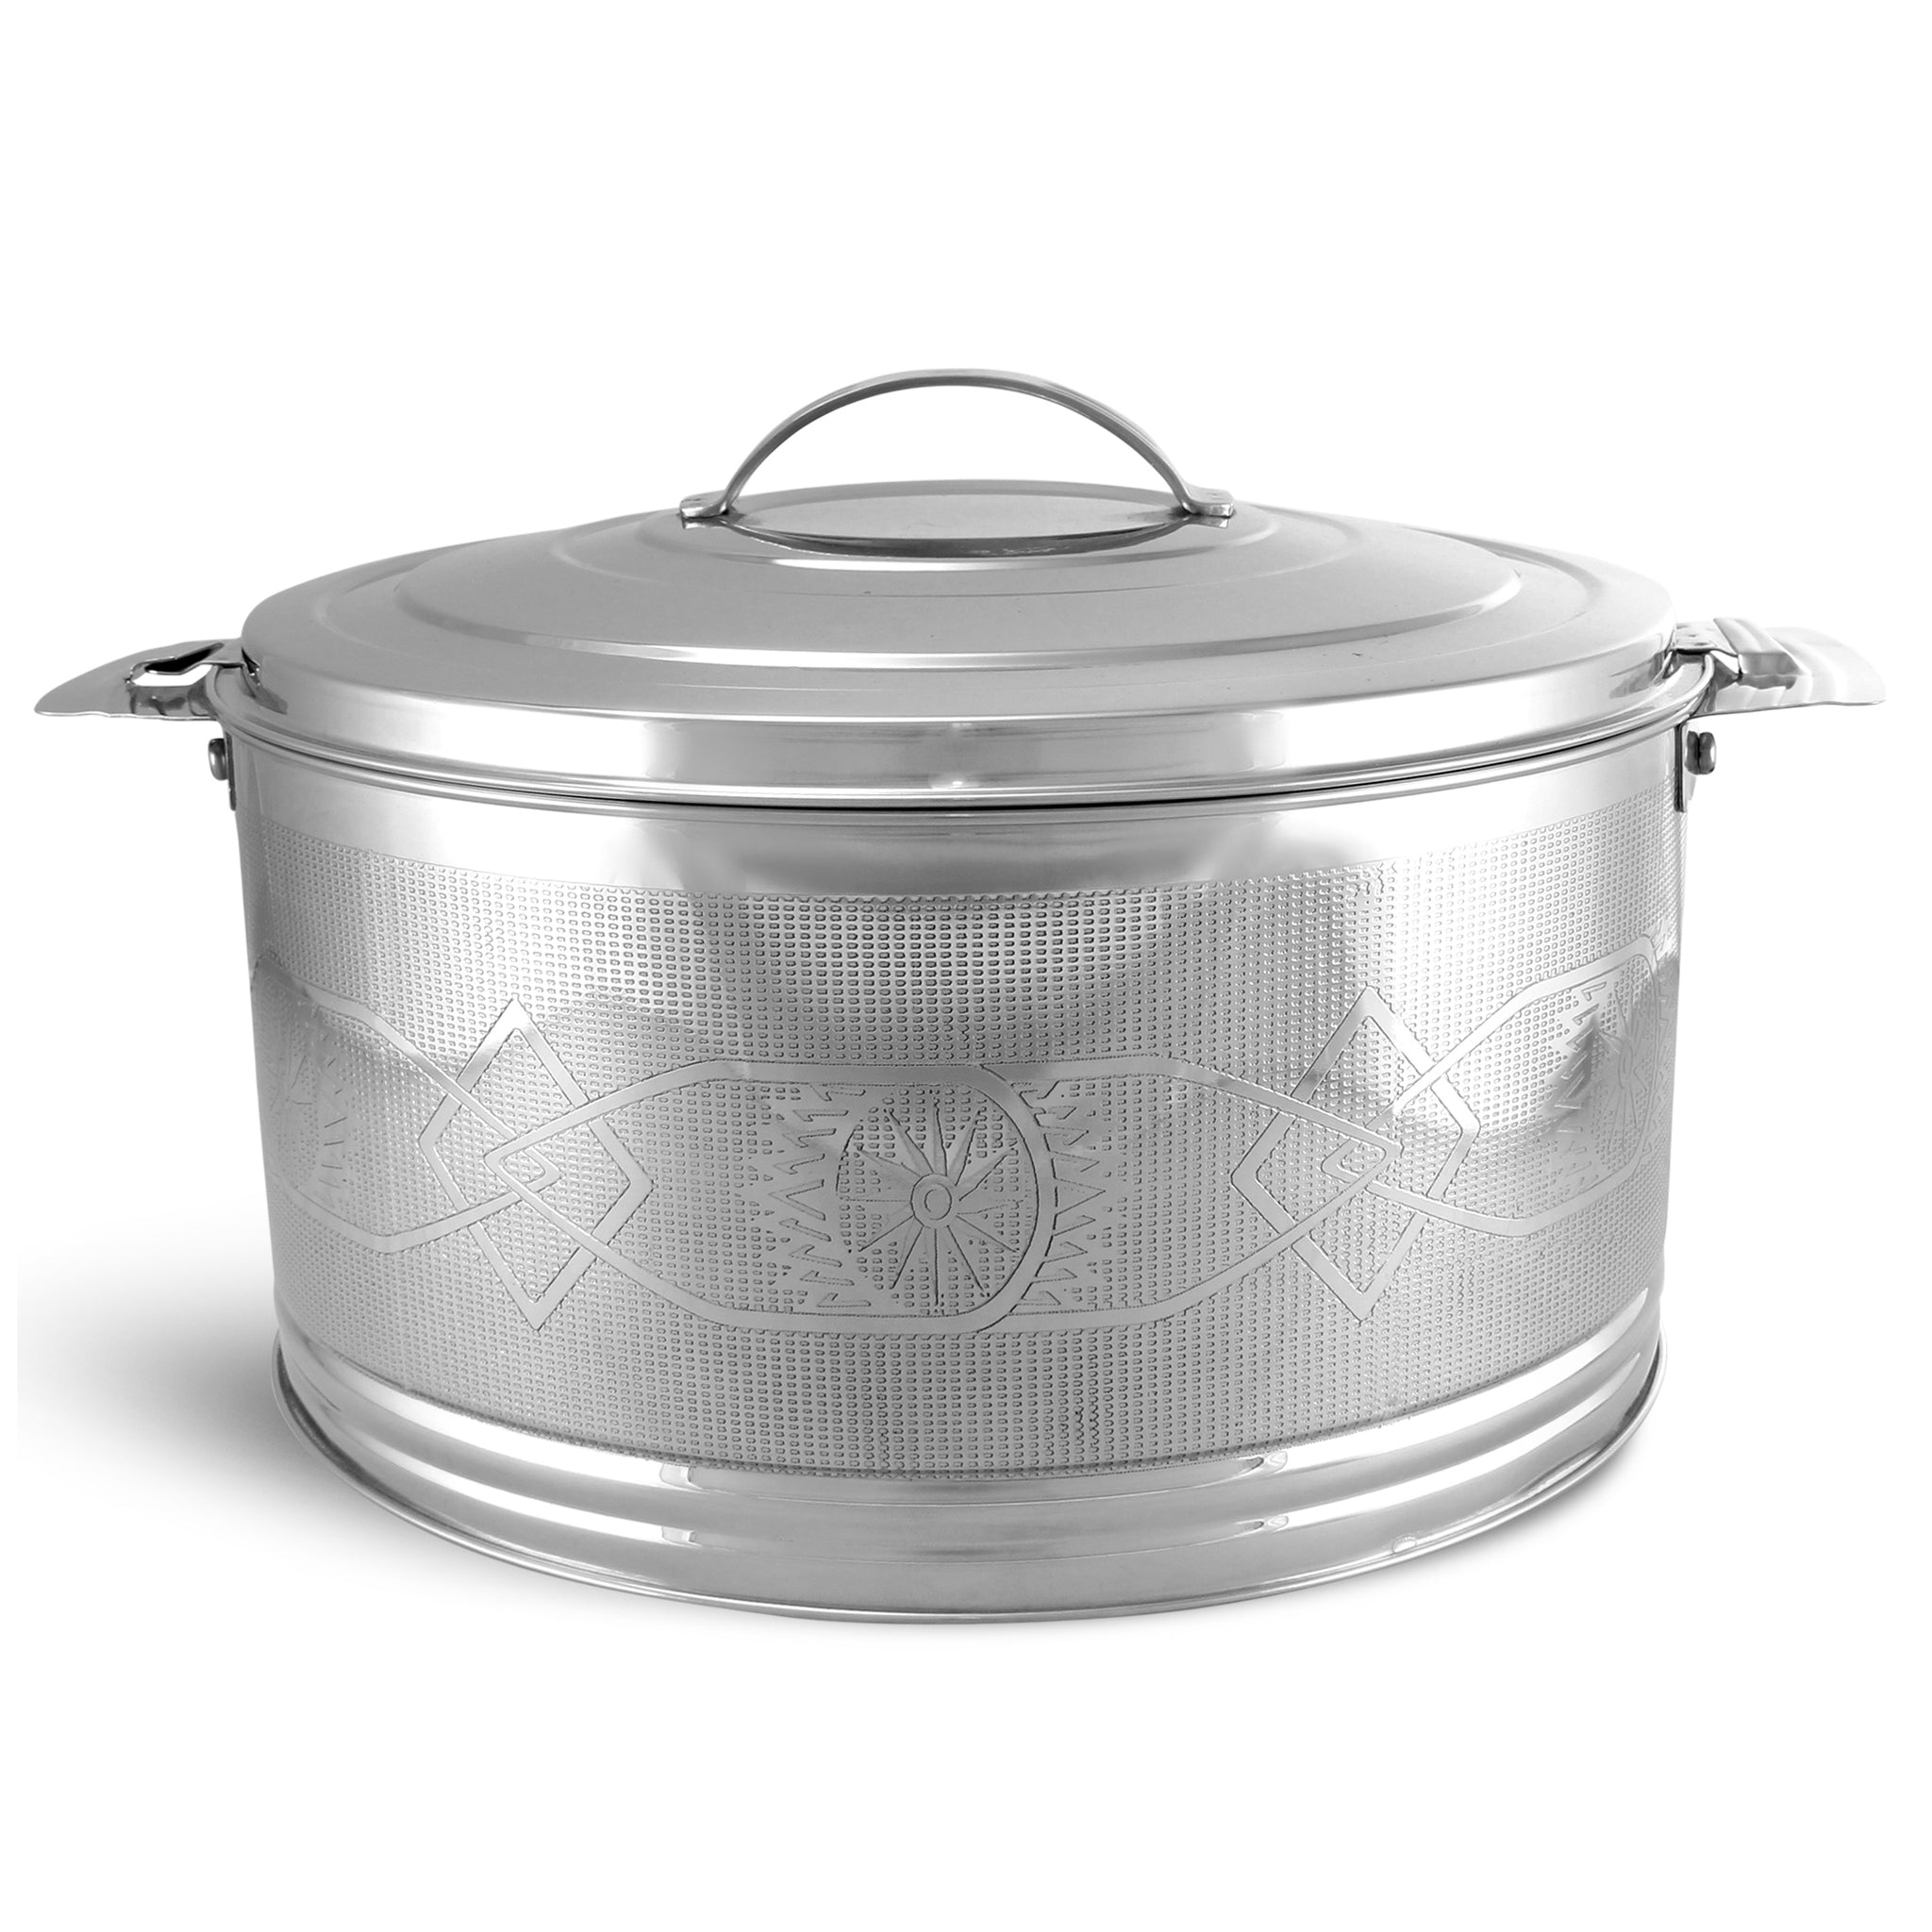 Royalford RF7482 Elite Silverline Stainless Steel Hot Pot, 6L